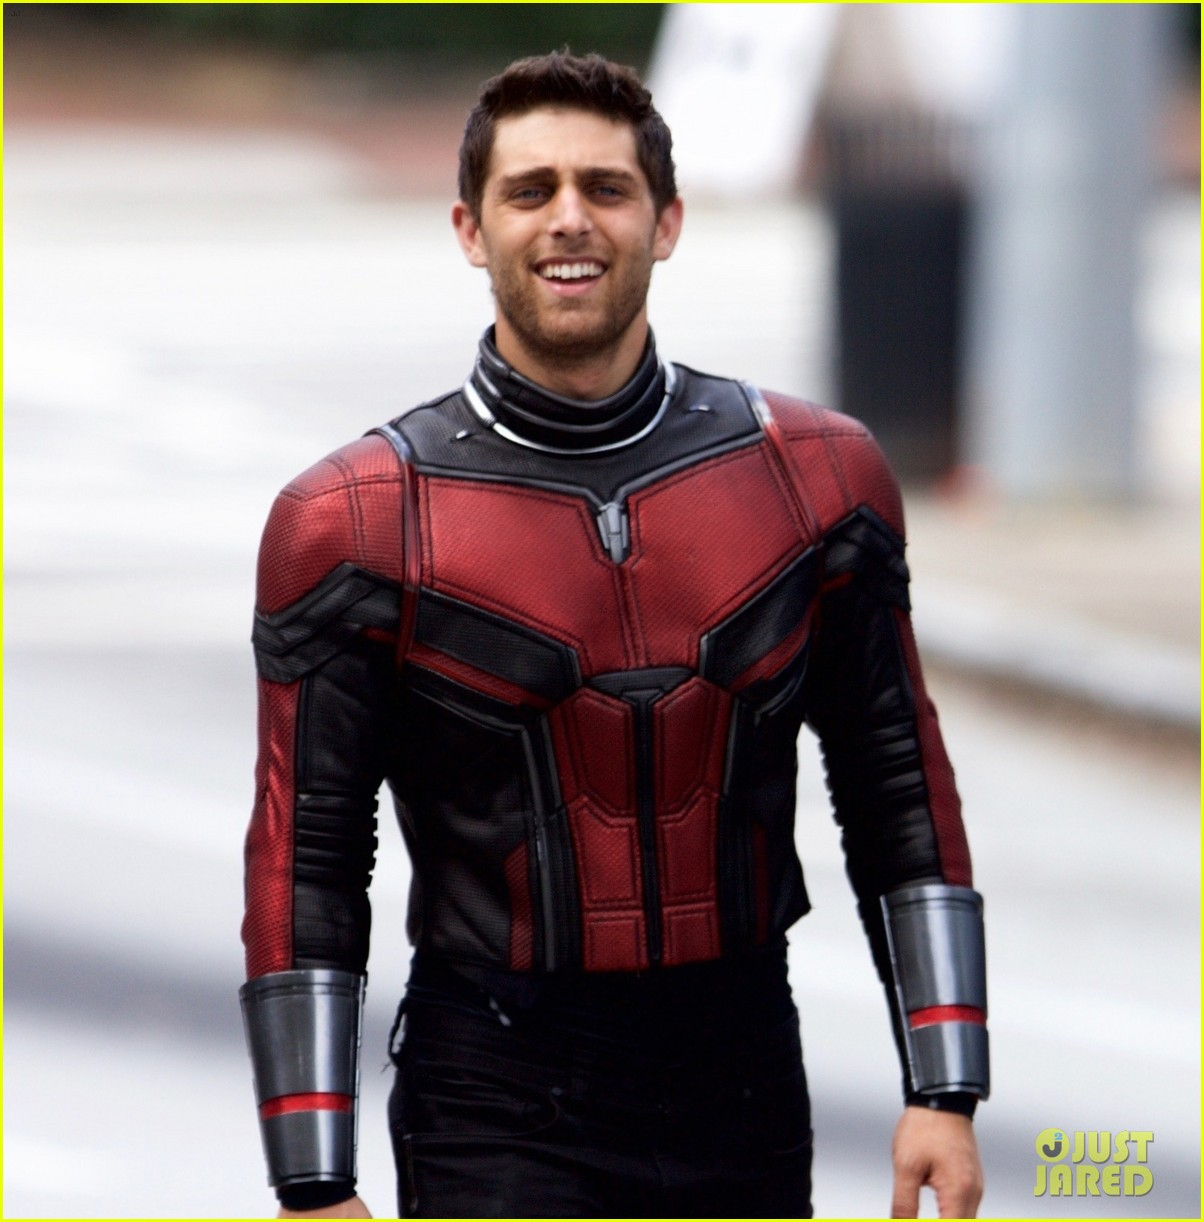 Ryan Seacrest Shirtless >> Paul Rudd's 'Ant-Man' Stunt Double Is an Amputee & Looks Really Hot in Costume!: Photo 3962865 ...